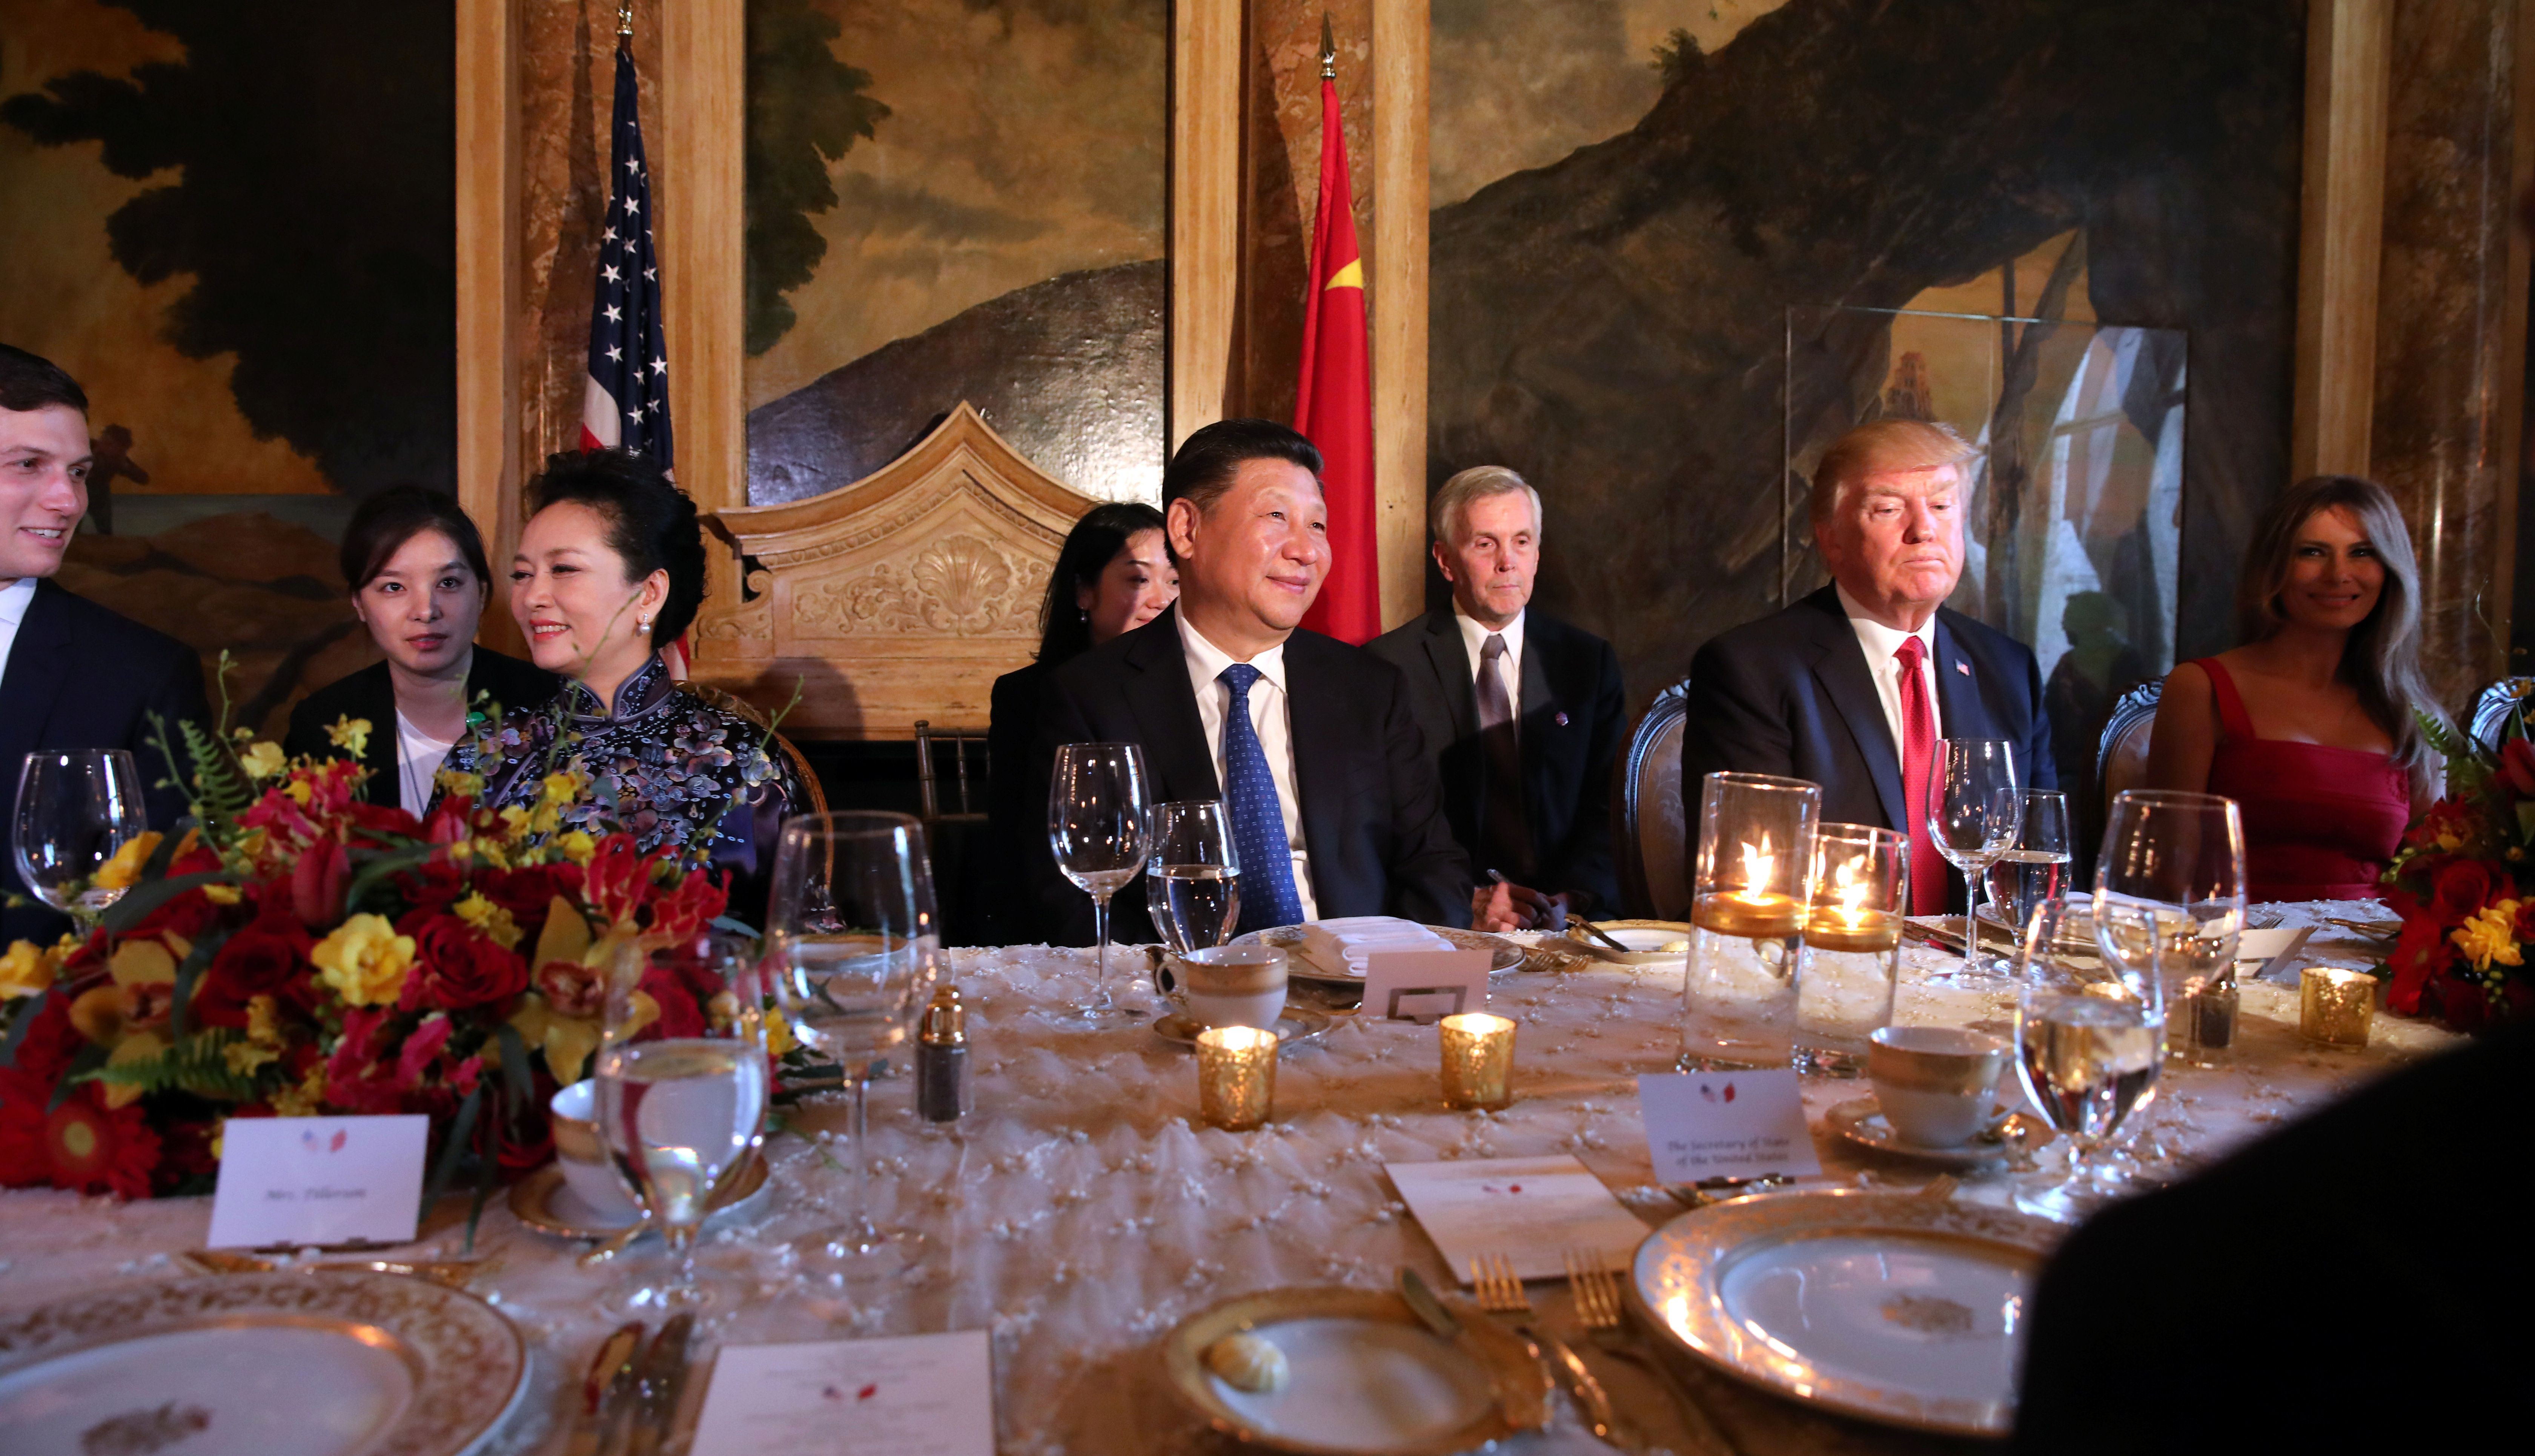 Trump Xi Dinner  Xi Jinping hates Donald Trump s Mar a Lago Here s why